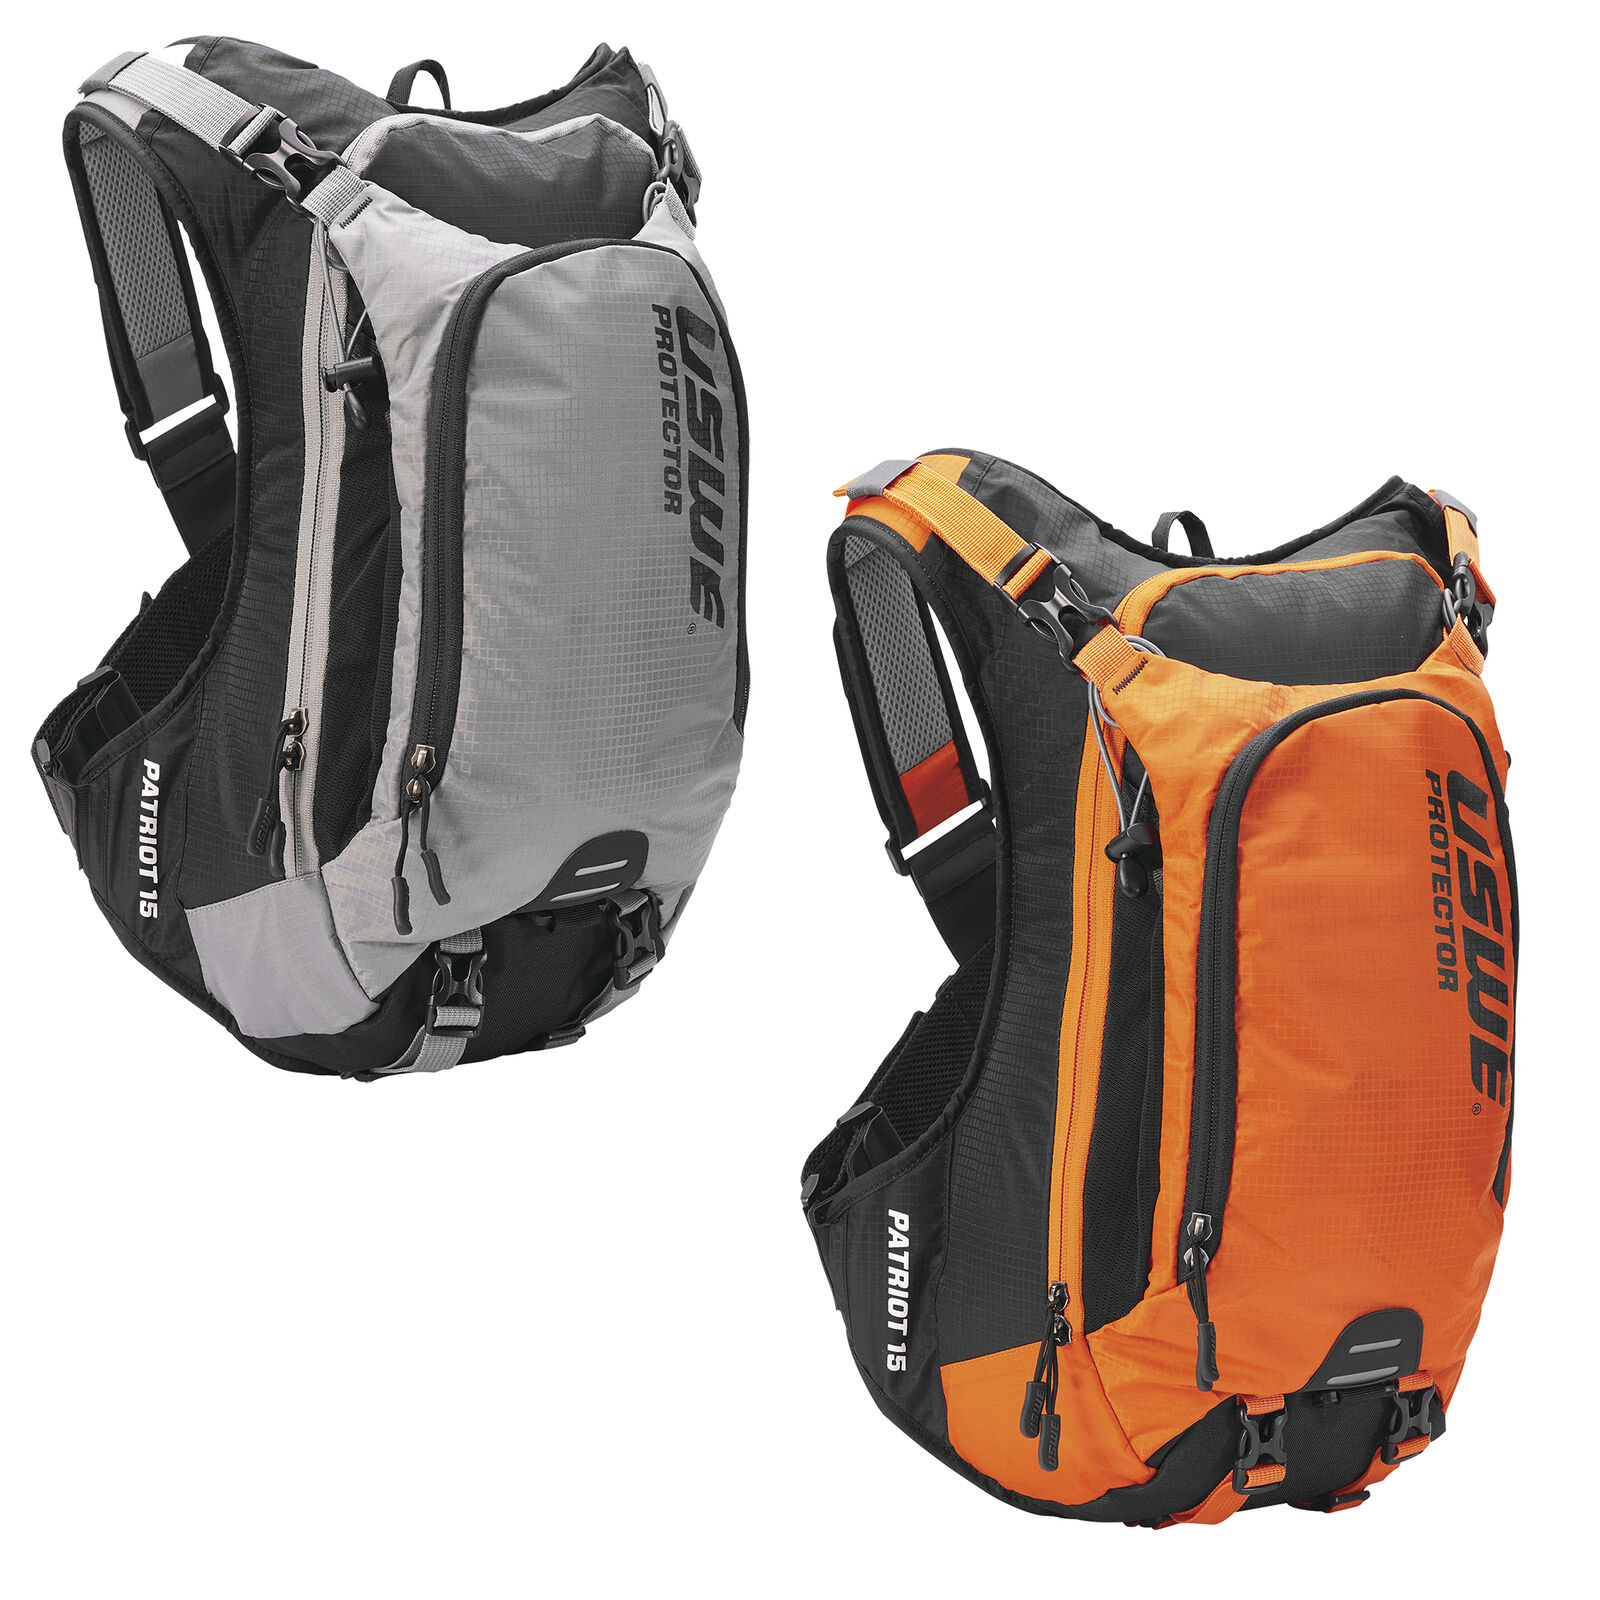 USWE Patriot 15 Backpack 15L, CE Back Protection, Bounce Free NDM™ Technology